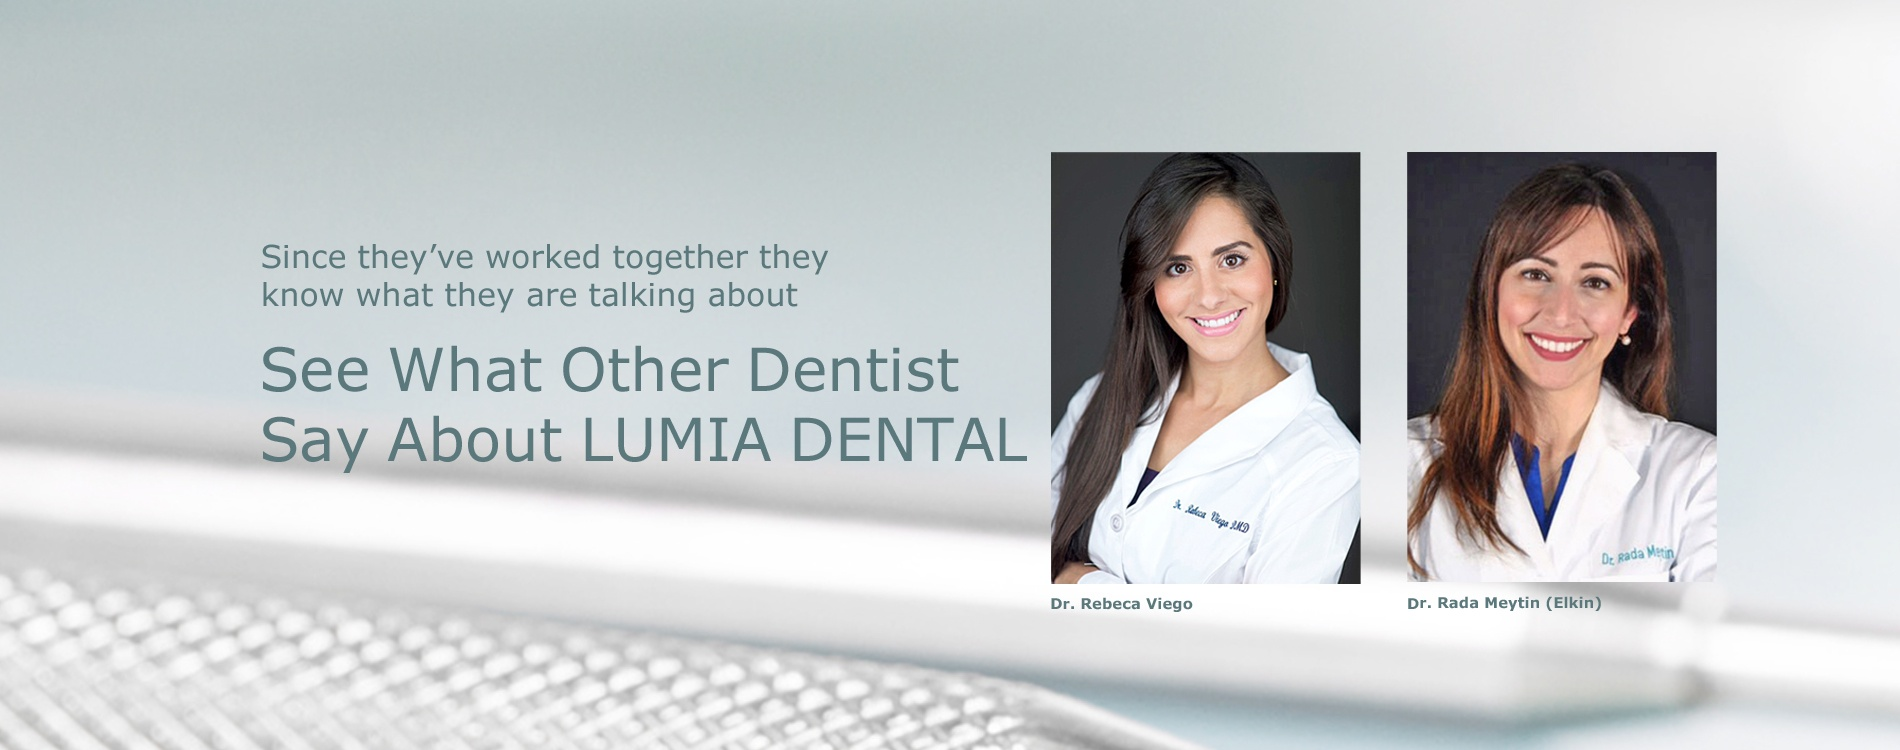 New Slider 3 - Other Dentists.jpg